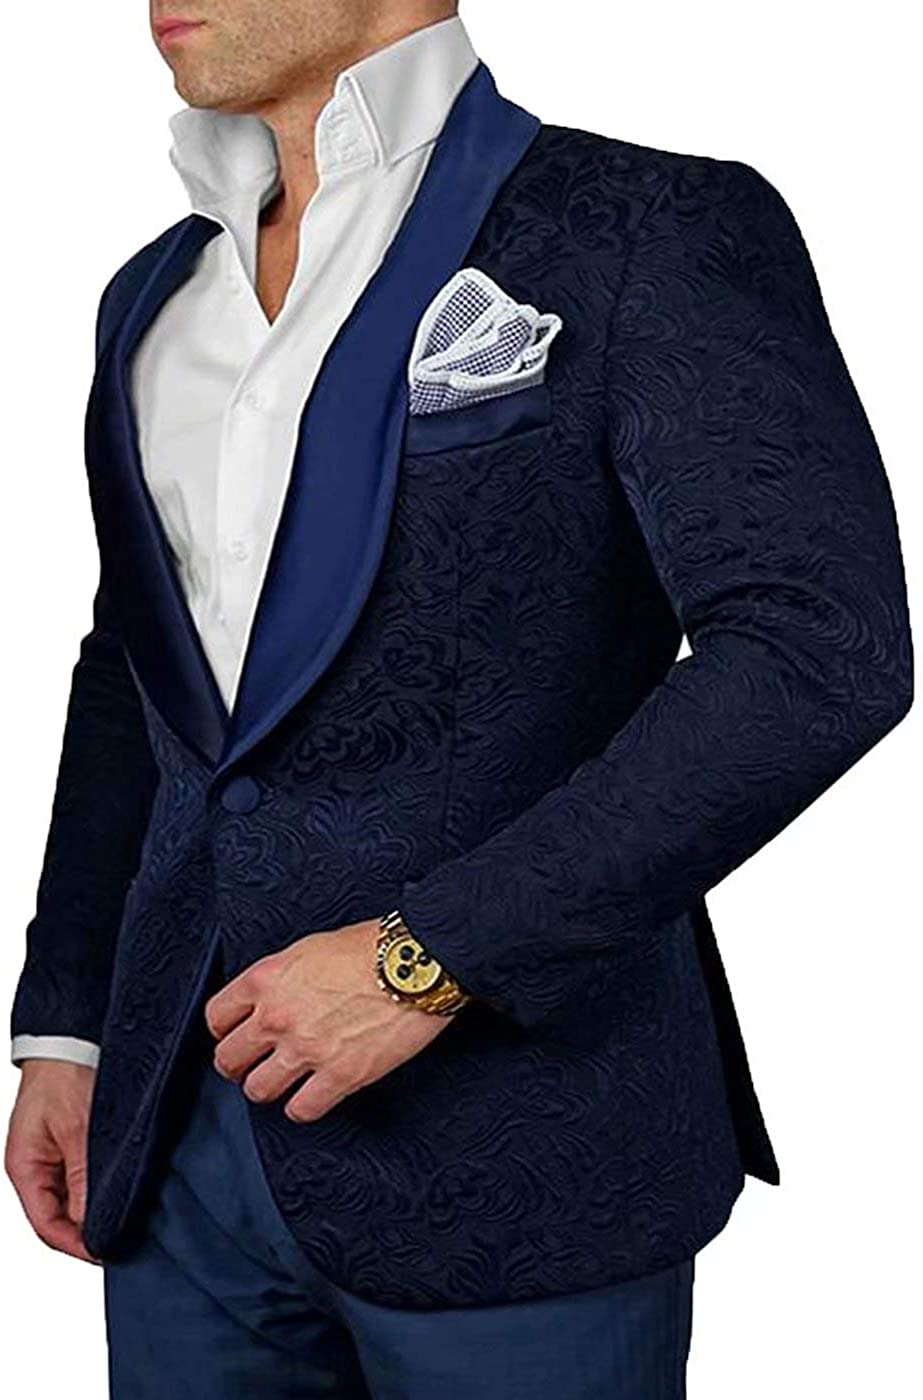 RONGKIM Mens Slim Fit One Button Business Suit Wedding Suits Groom Tuxedos Floral Prom Dress Suit